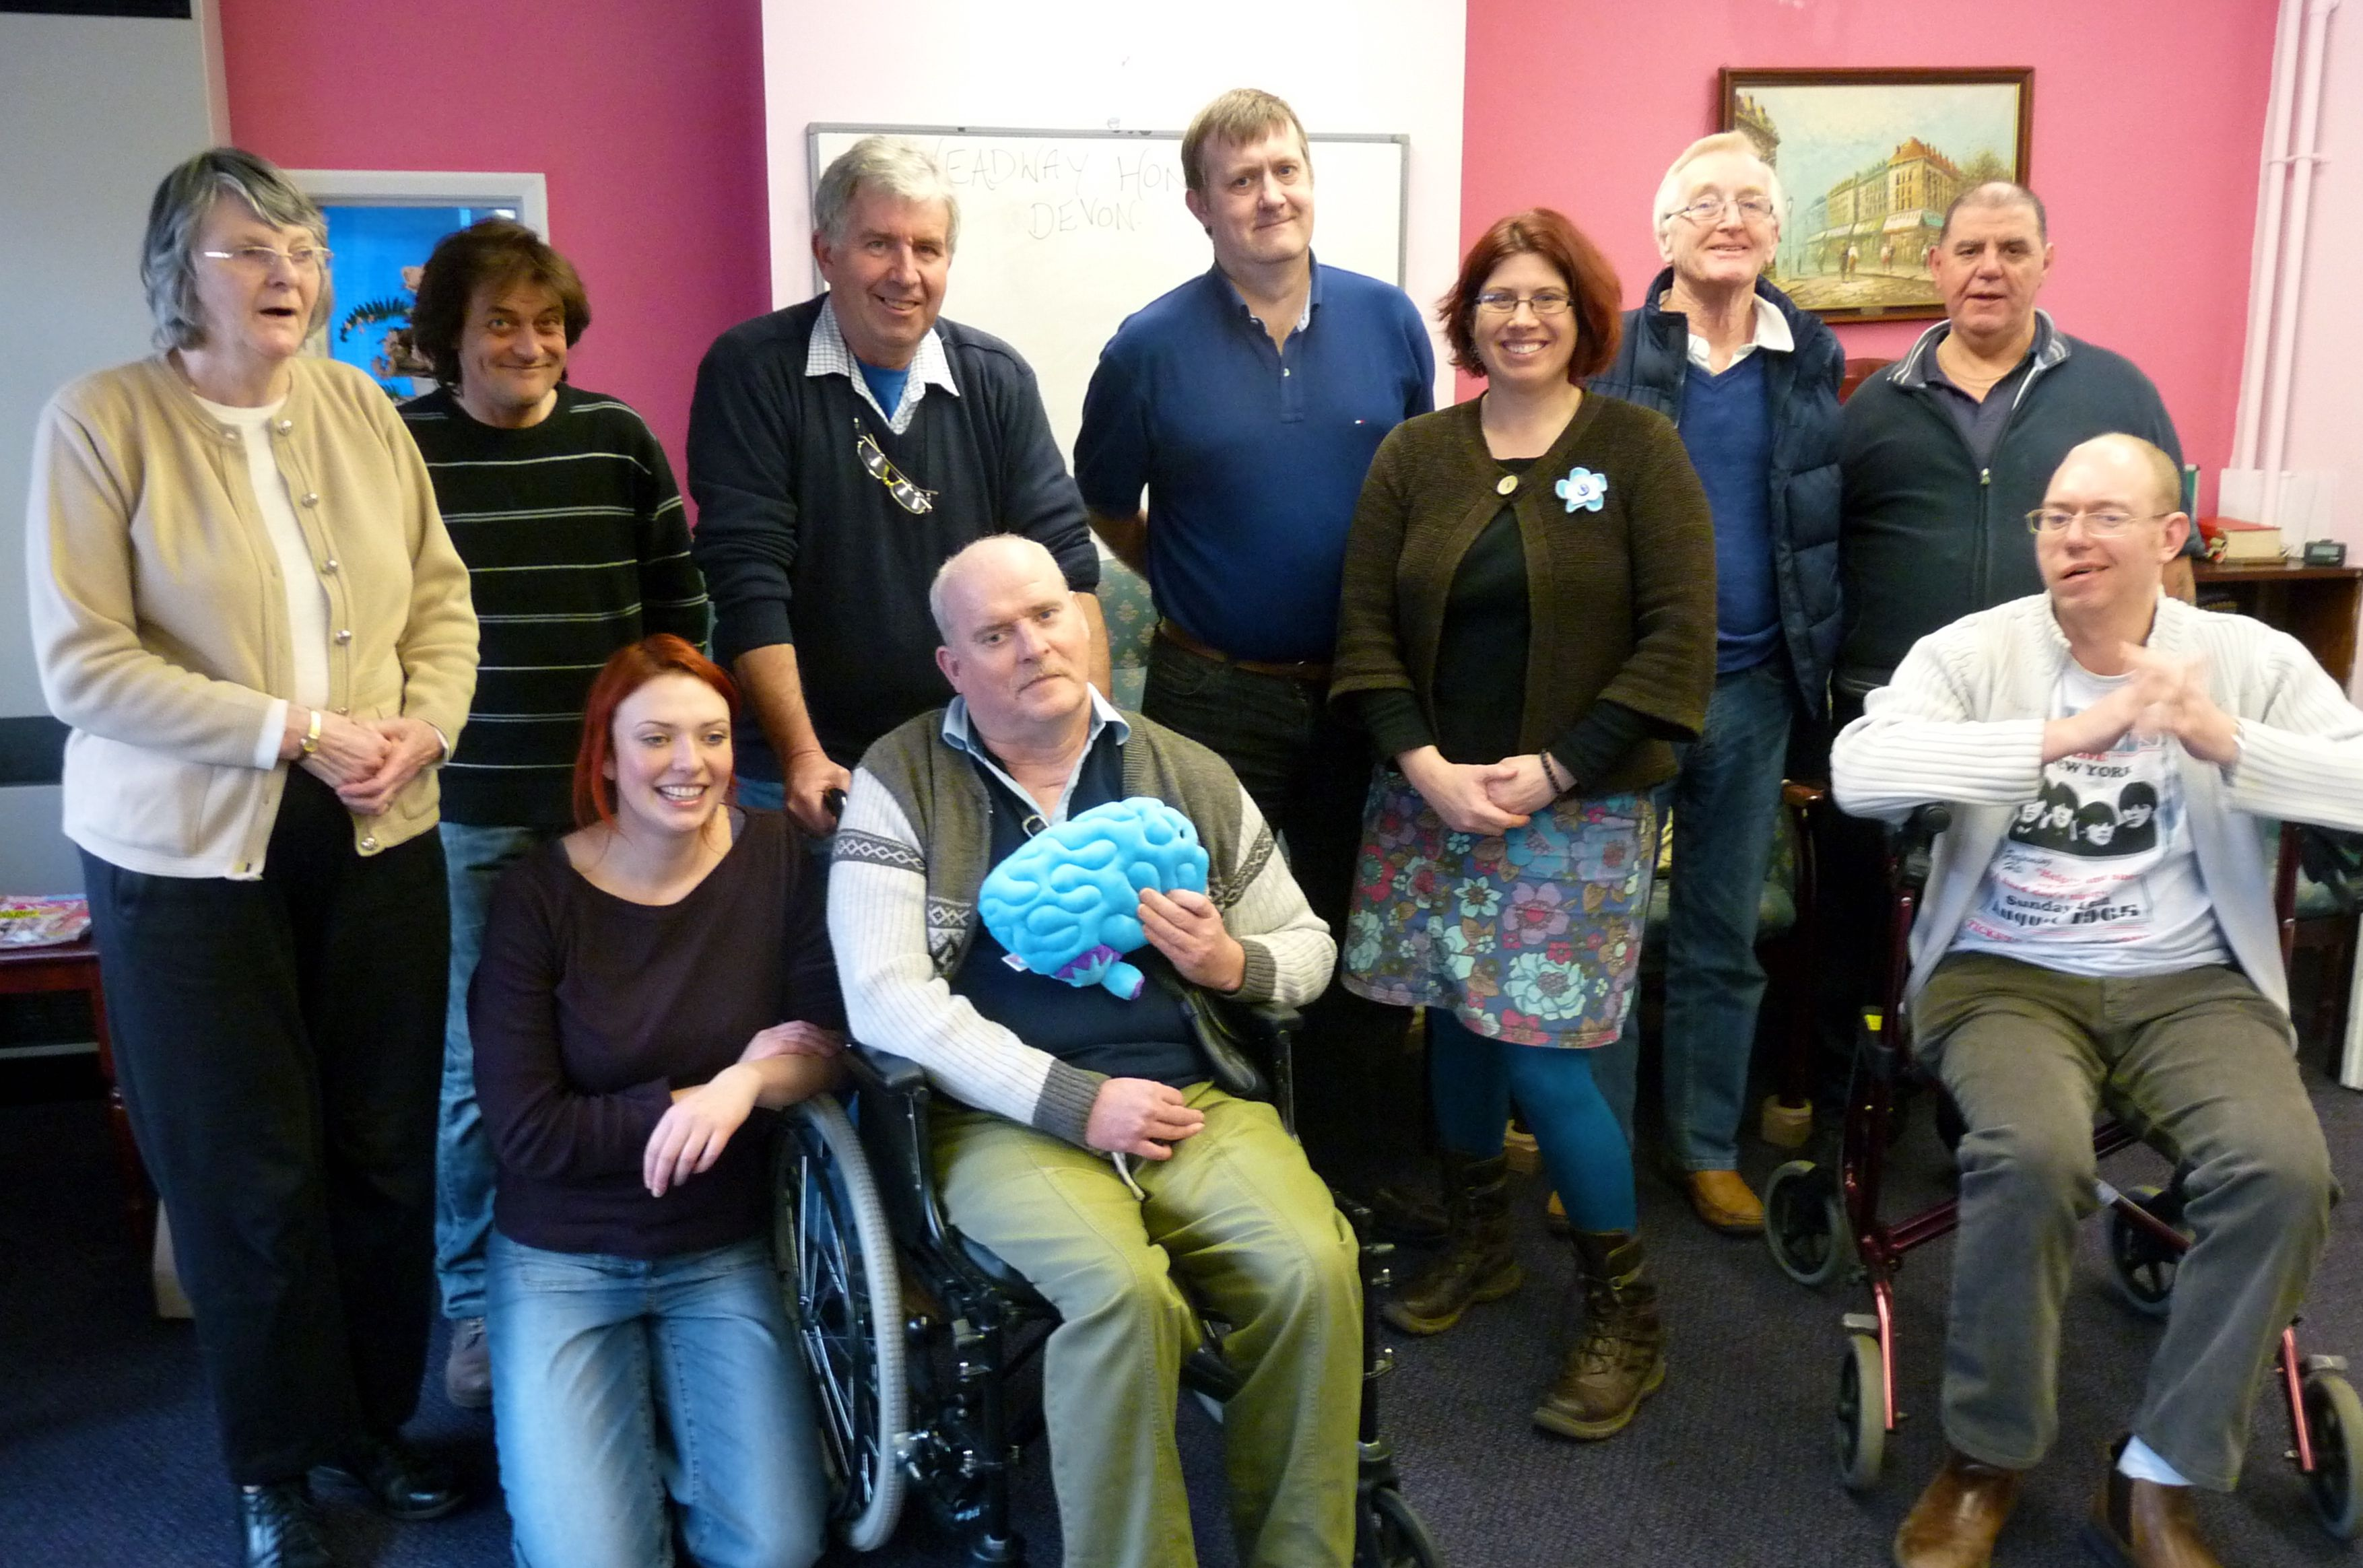 Honiton Town Councillor Sharon Pavey (4th from right) with staff, volunteers and clients of Headway in Honiton